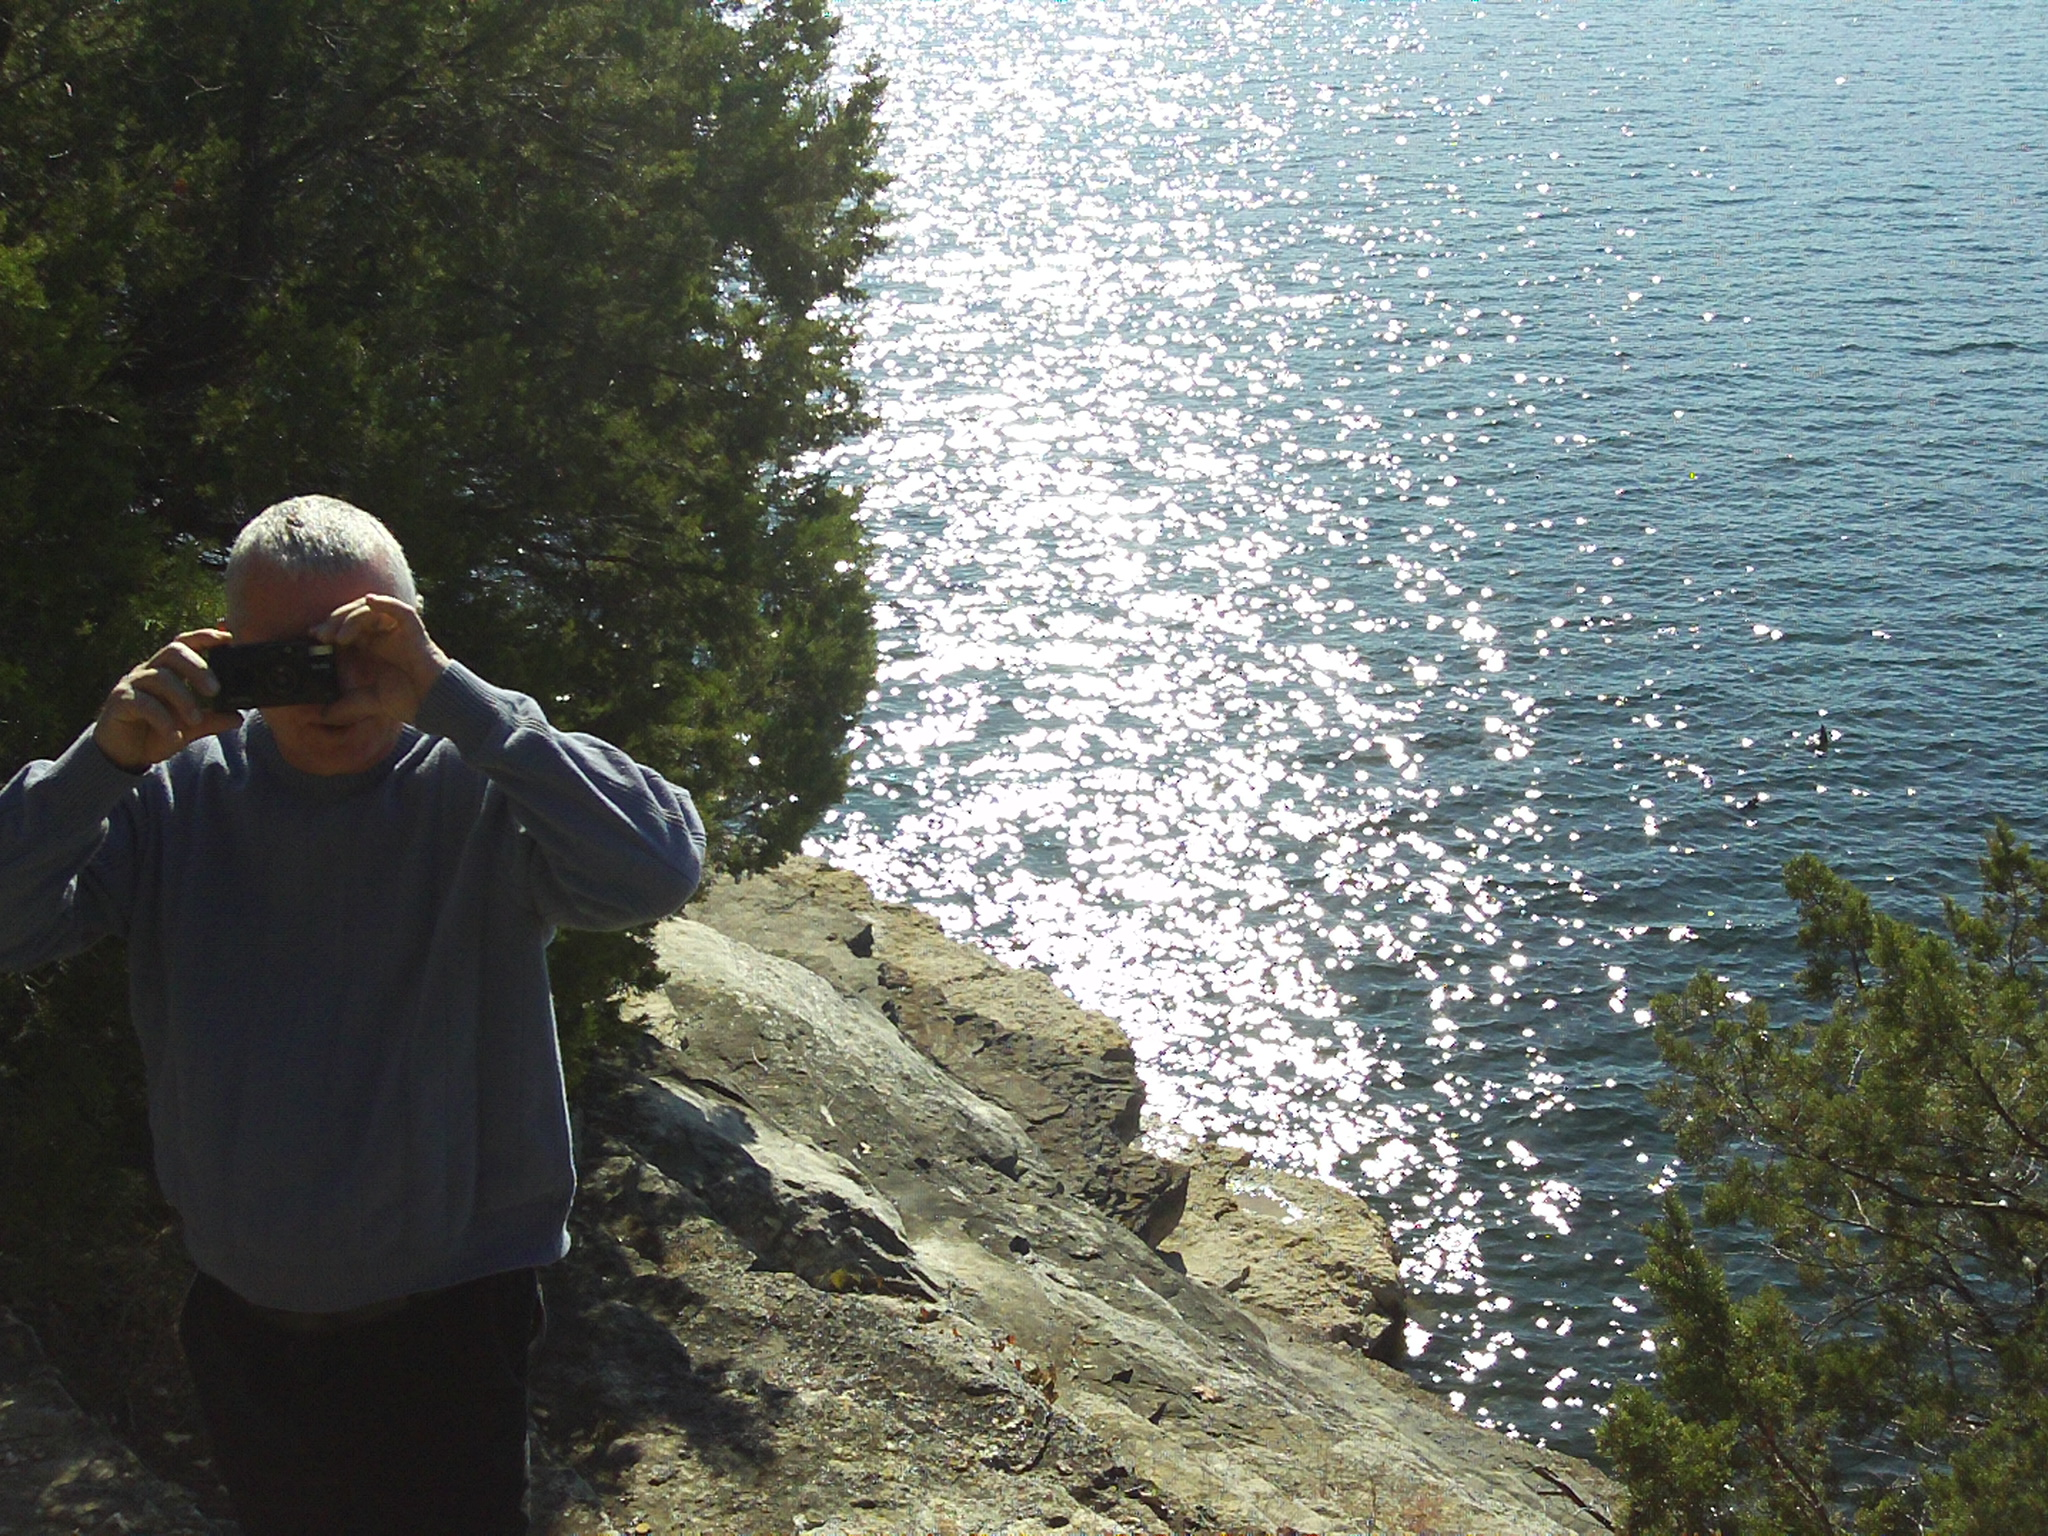 My Dad in 2010, taking a picture of me, taking a picture of him. It was on complete accident, but its a very memorable photo for me.